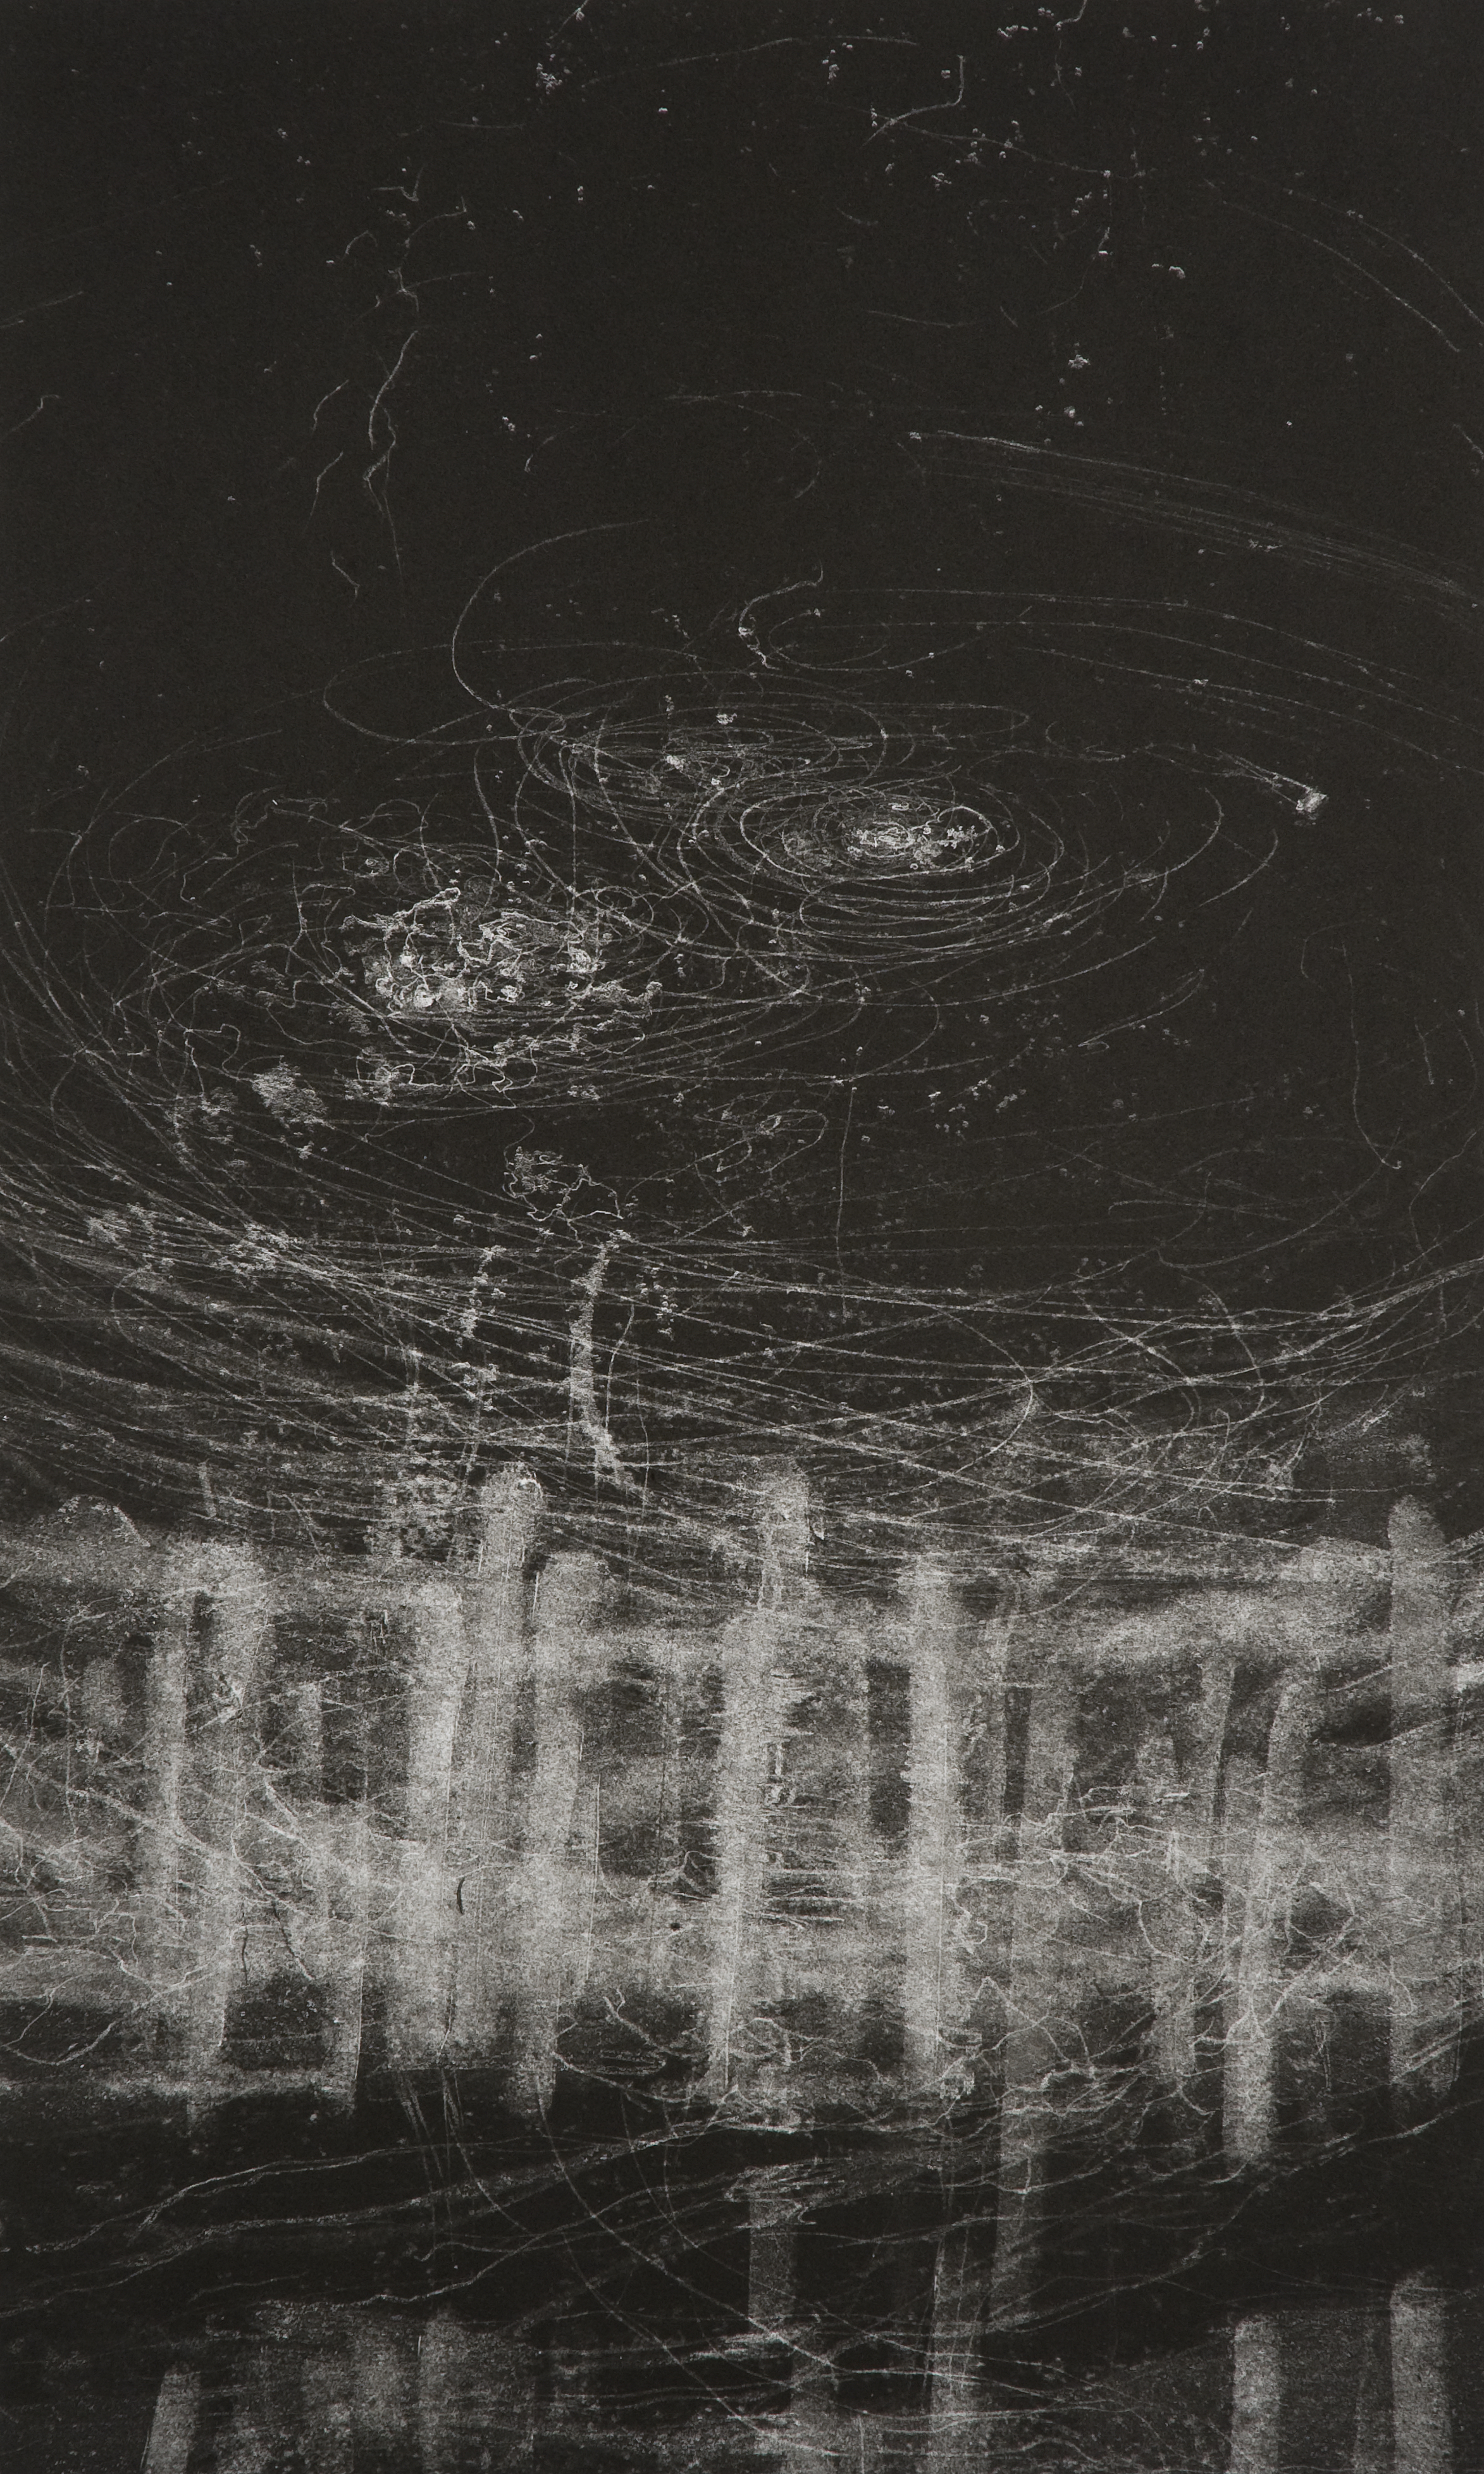 Hilda Shen, Illumined Triptych (middle), 2010. Set of 3 unique monotypes, 15 x 25 inches, ©Hilda Shen, courtesy of Fou Gallery